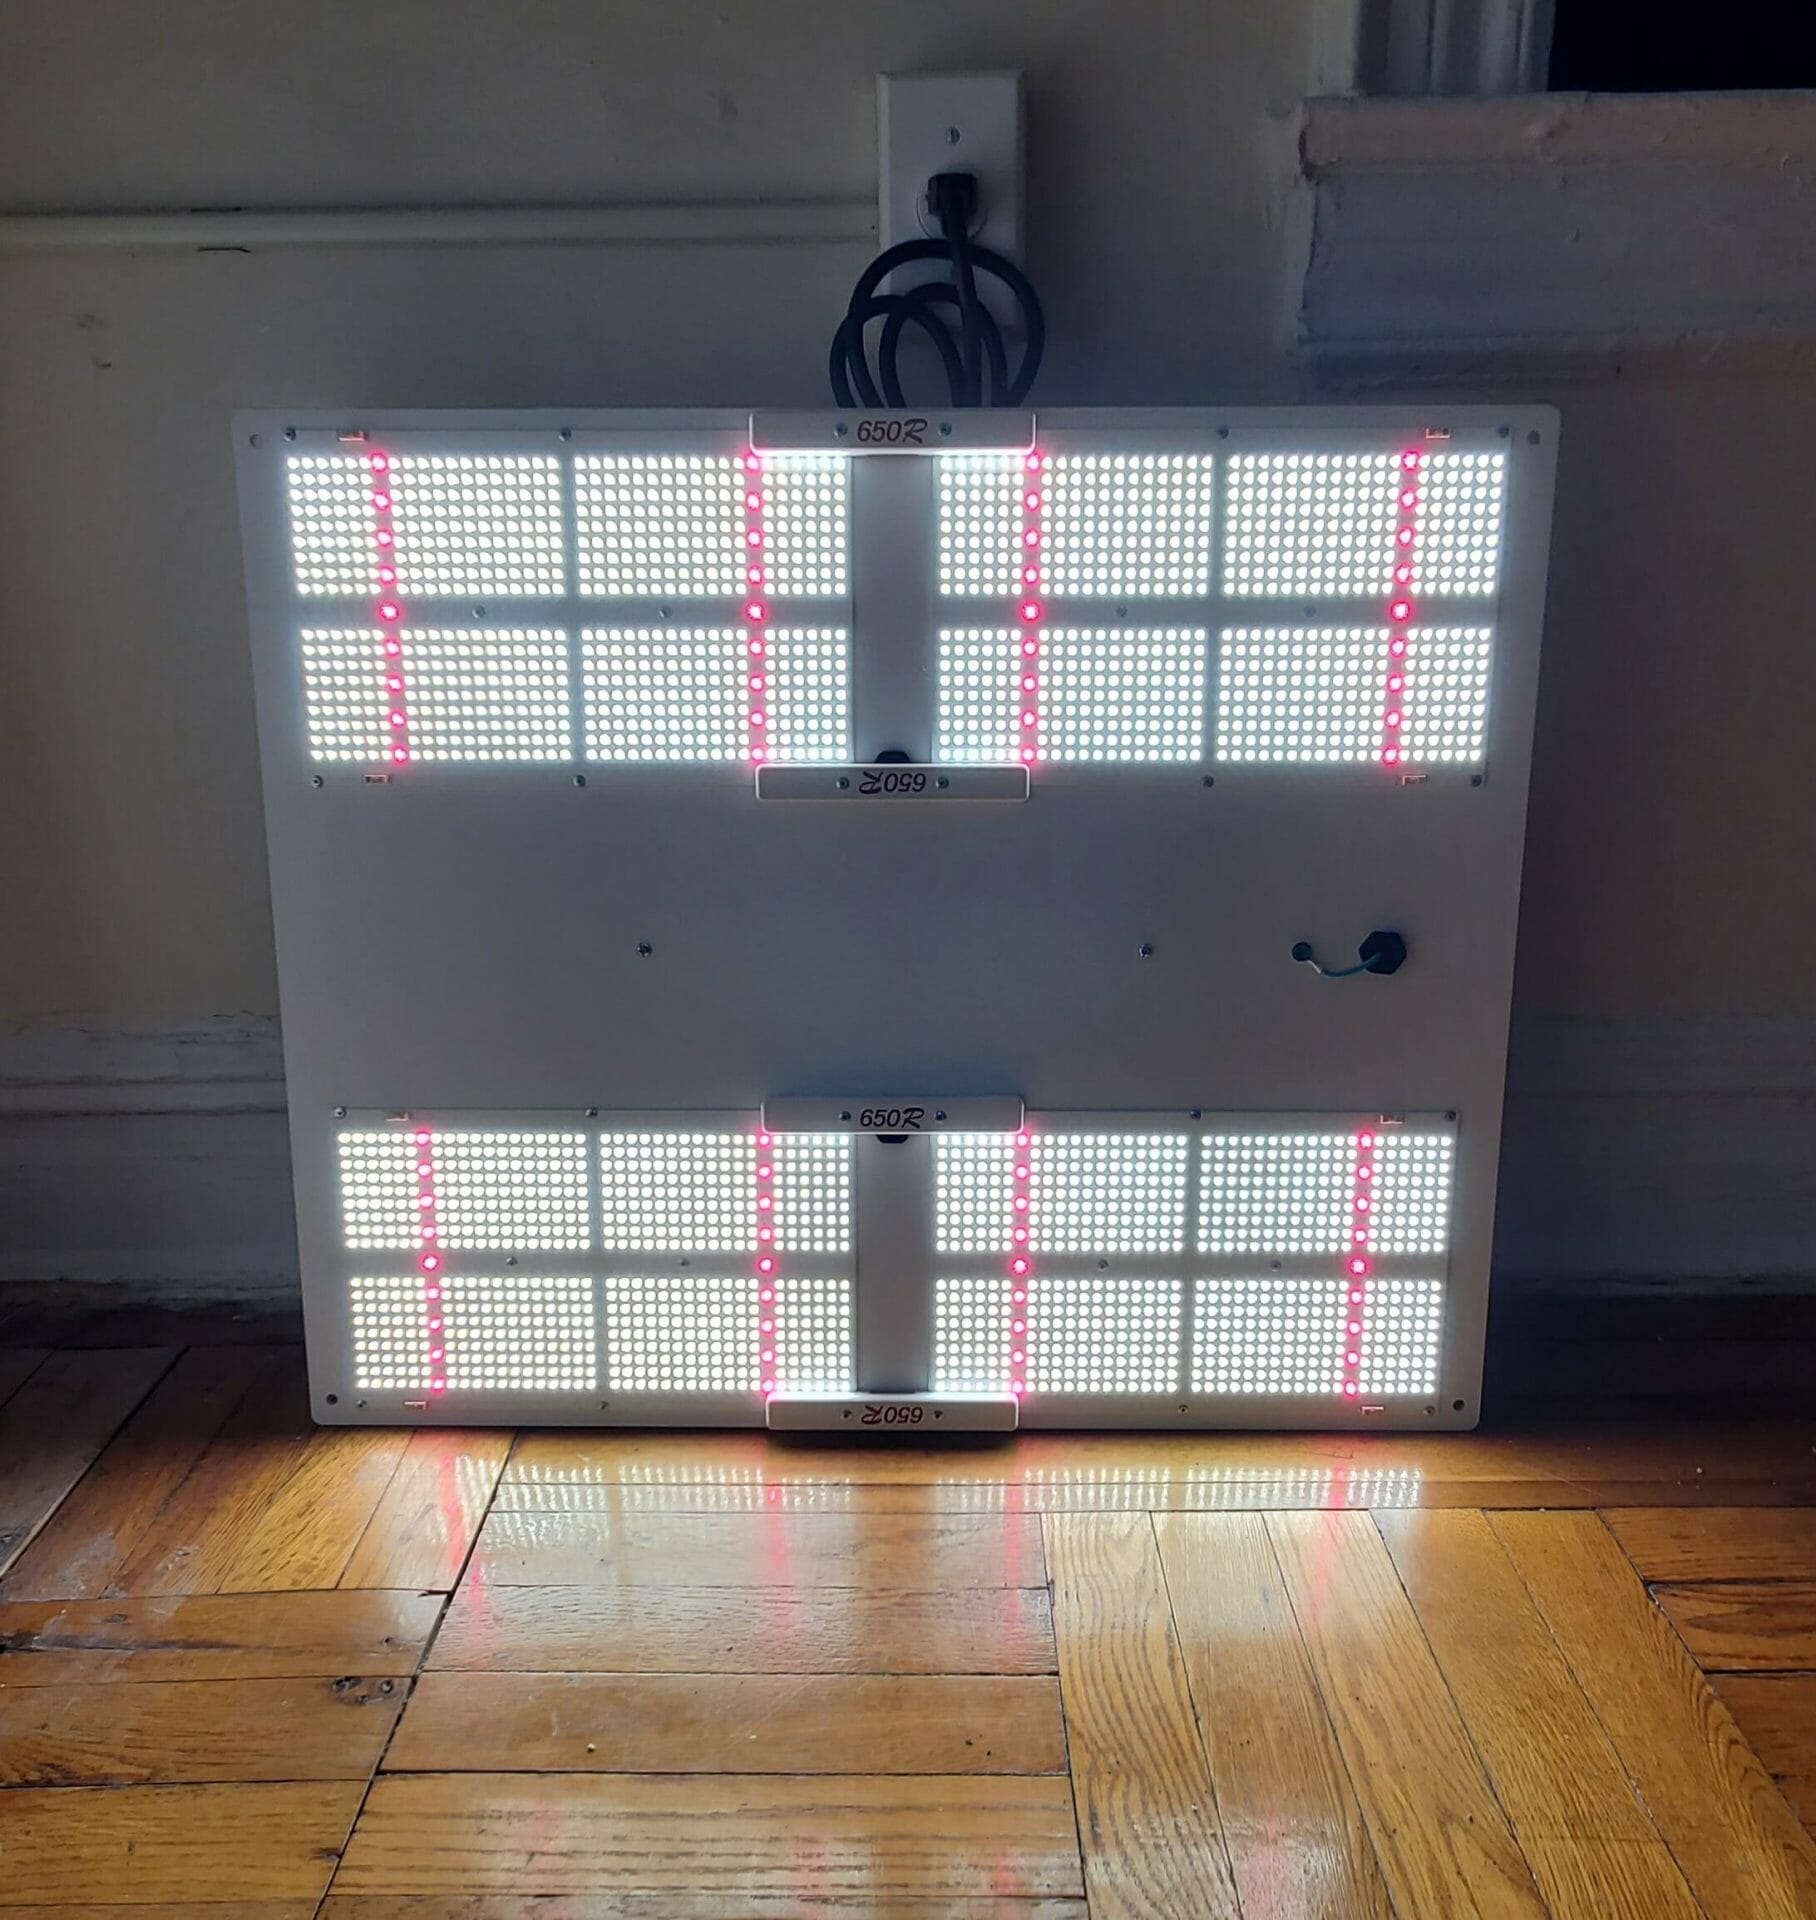 HLG 650R grow light